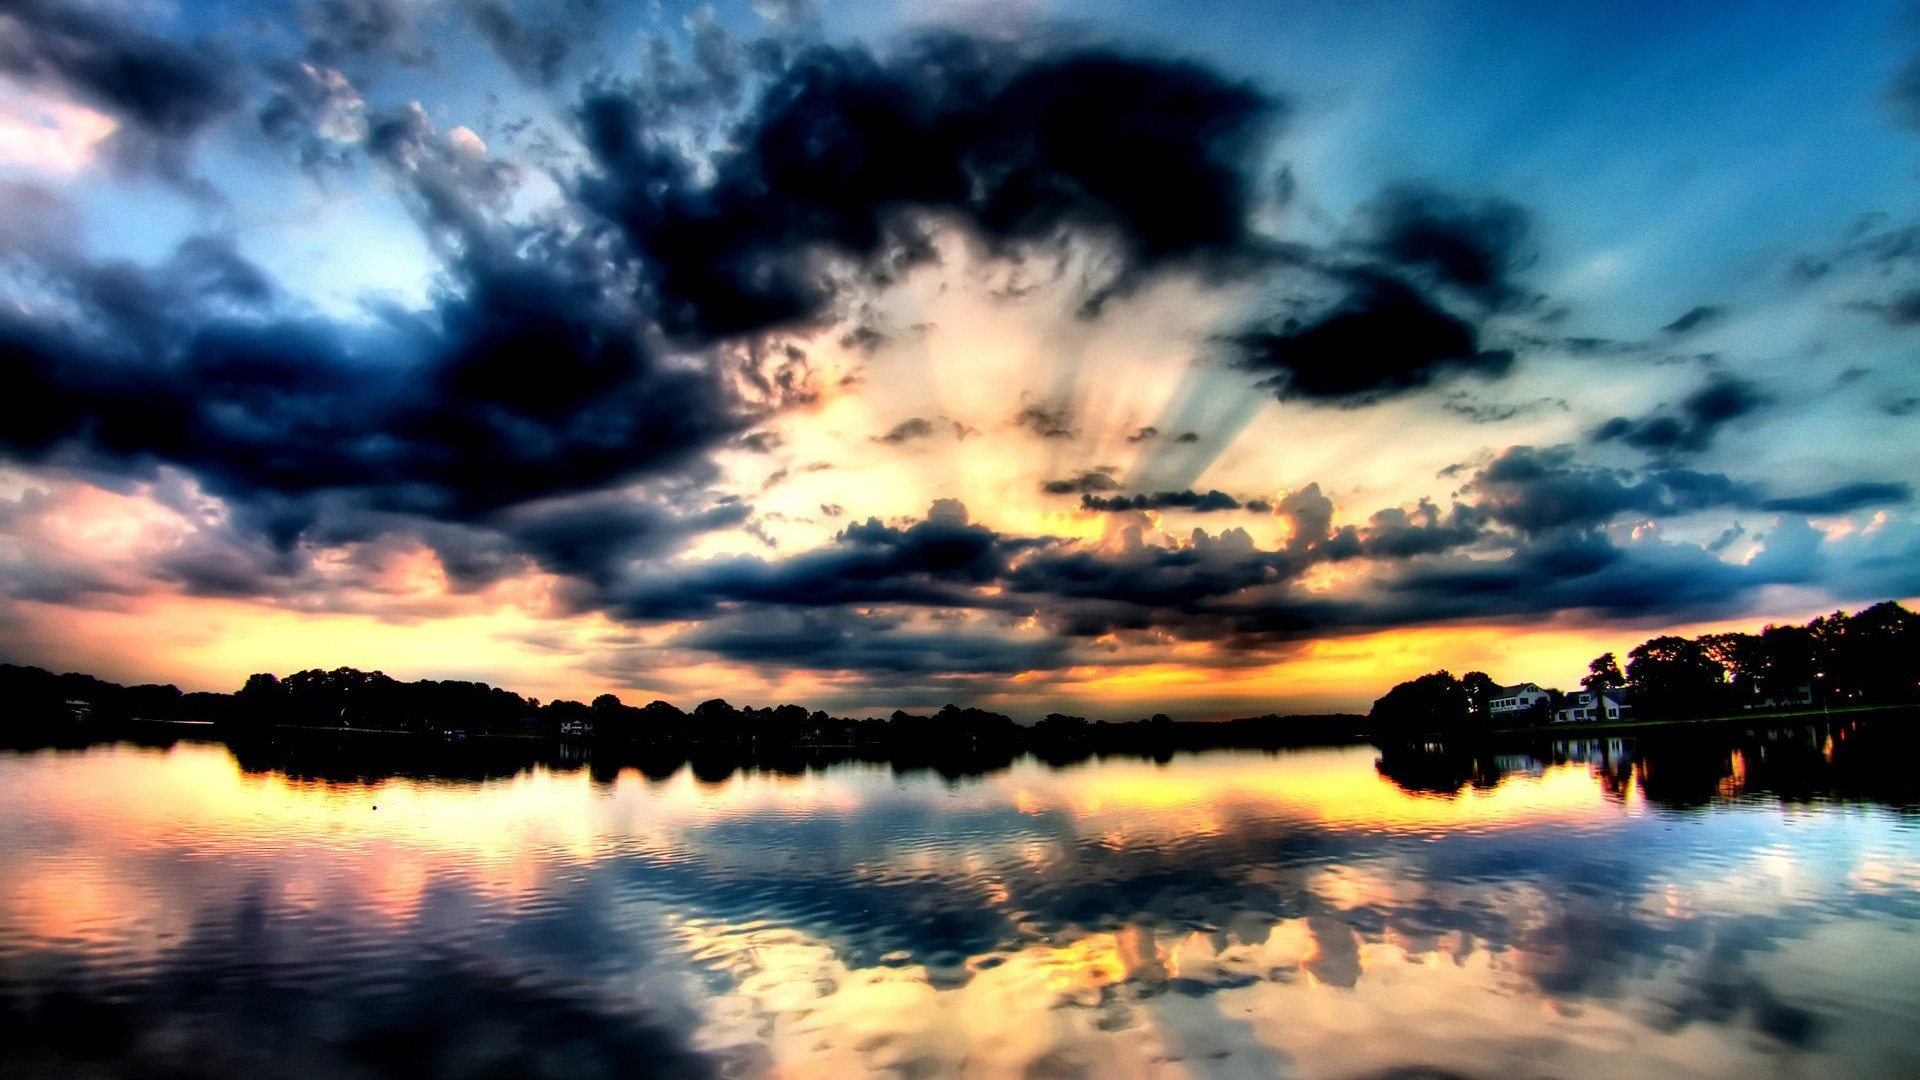 Awesome hd wallpapers 1080p 60 images - Wallpaper 1080p for pc ...